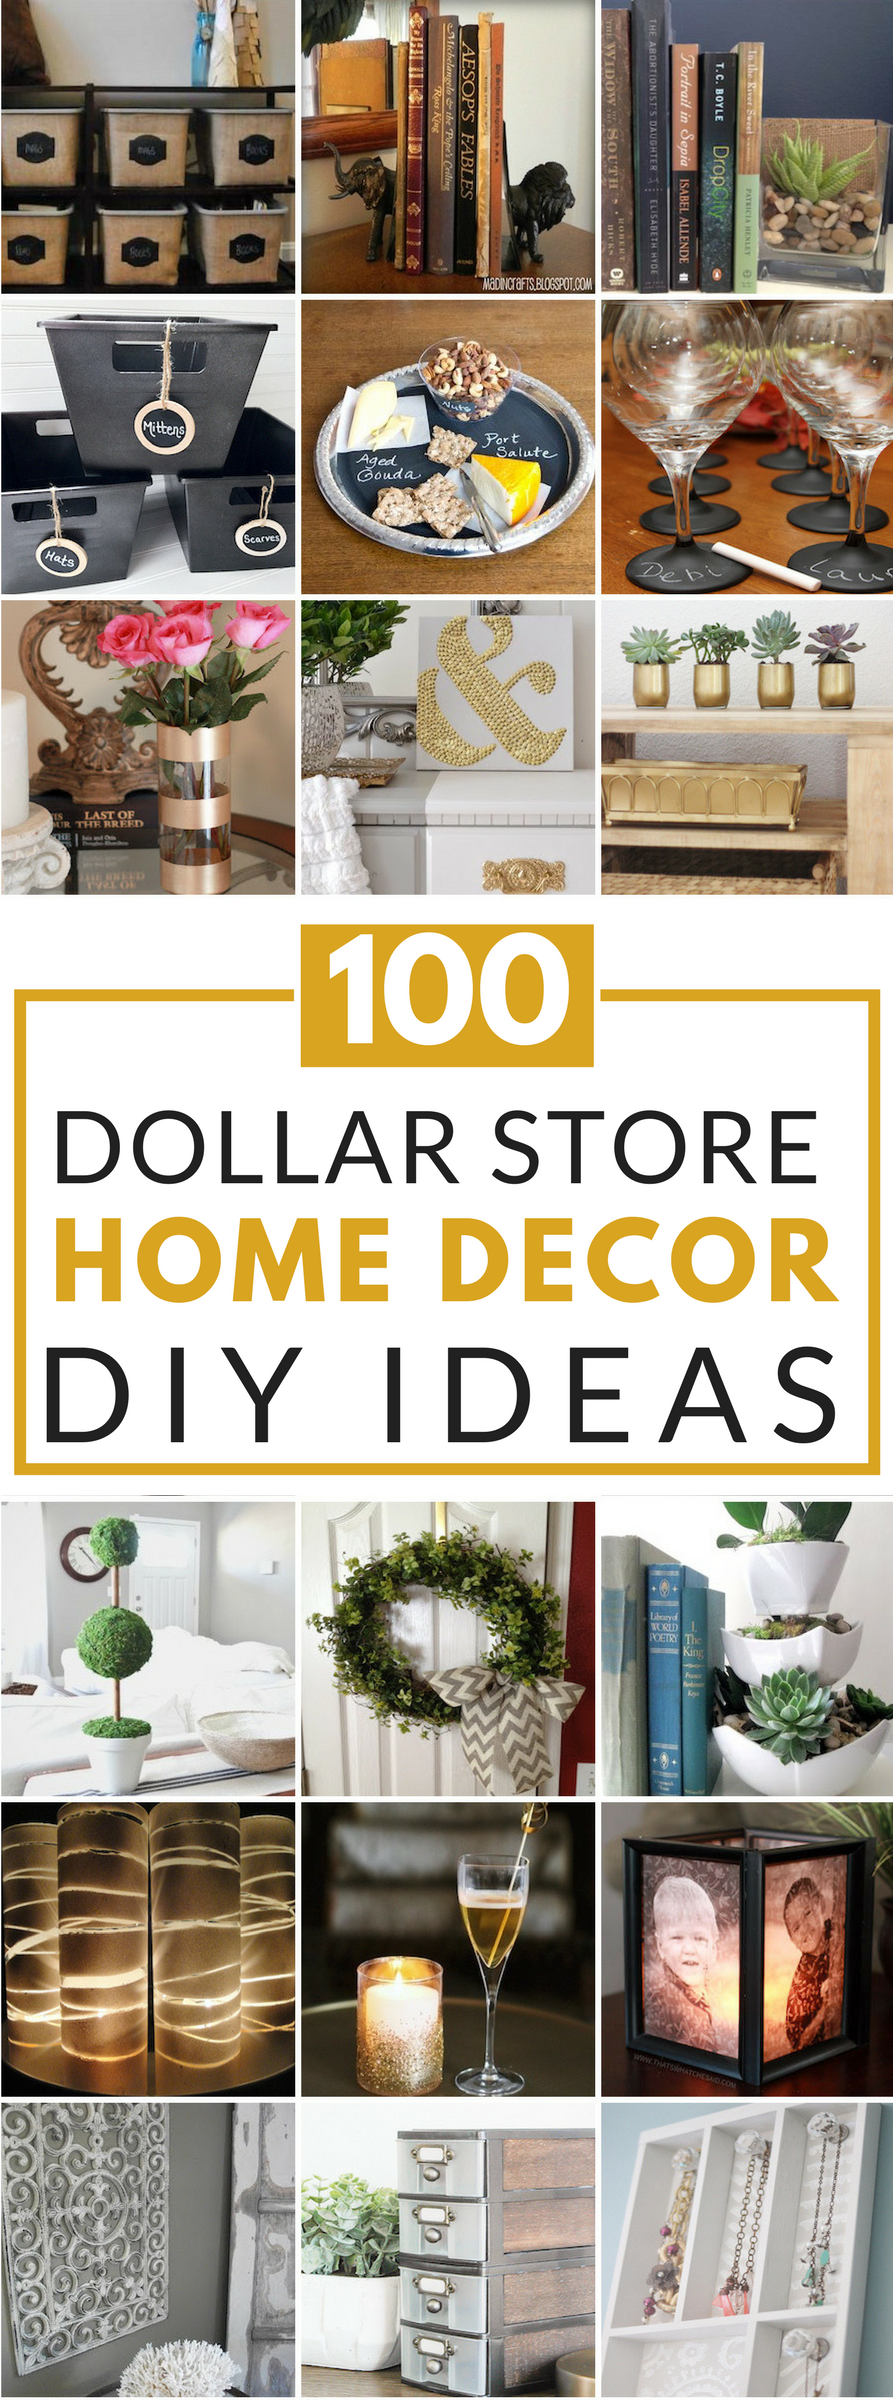 Charming 100 Dollar Store DIY Home Decor Ideas